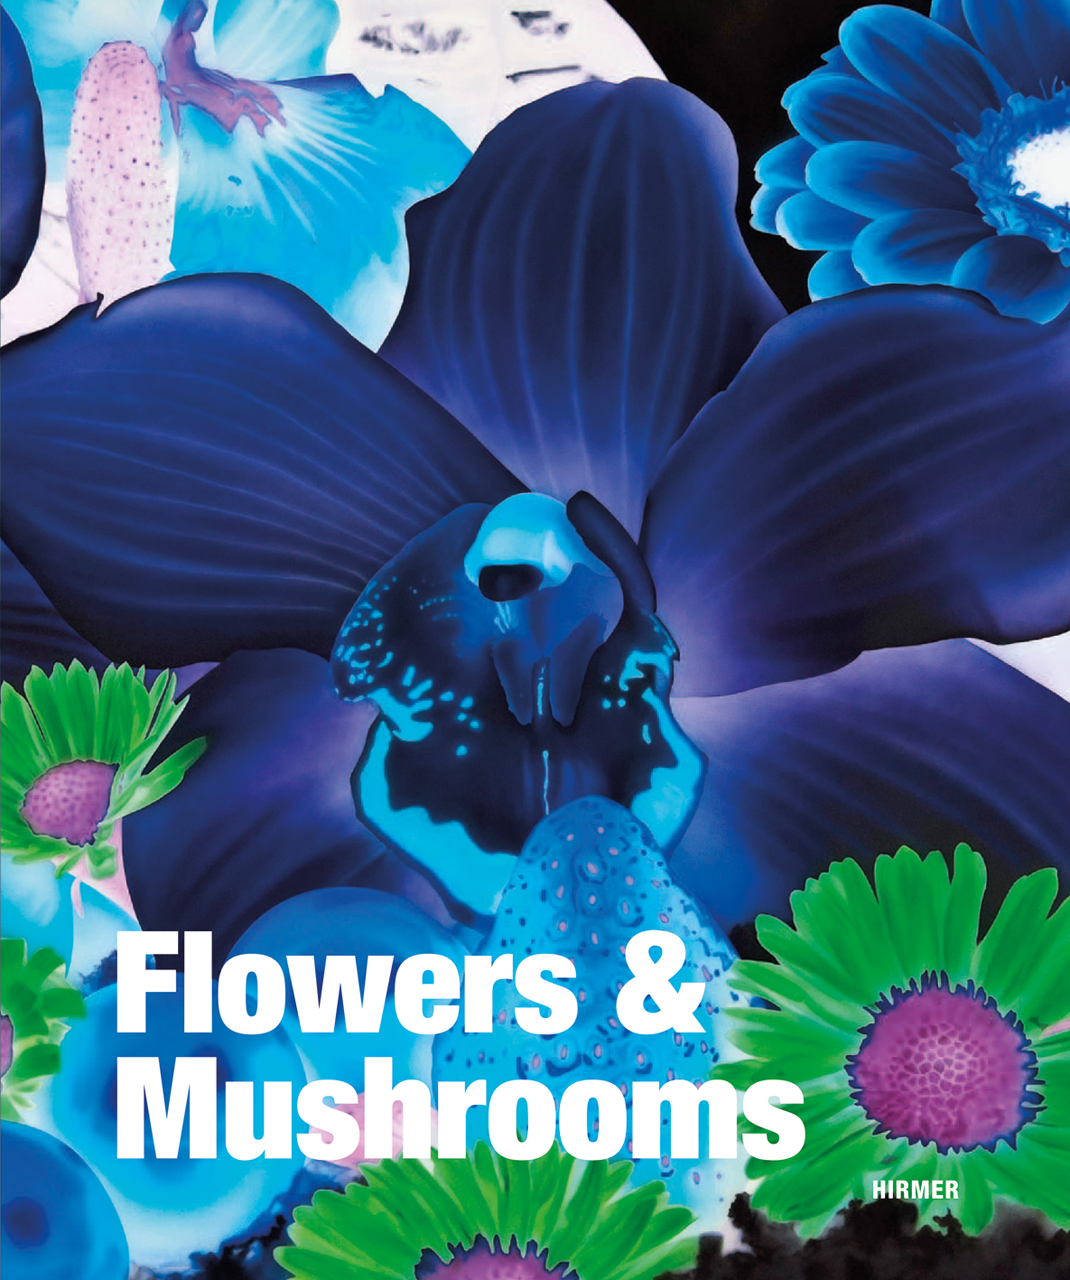 Flowers and Mushrooms